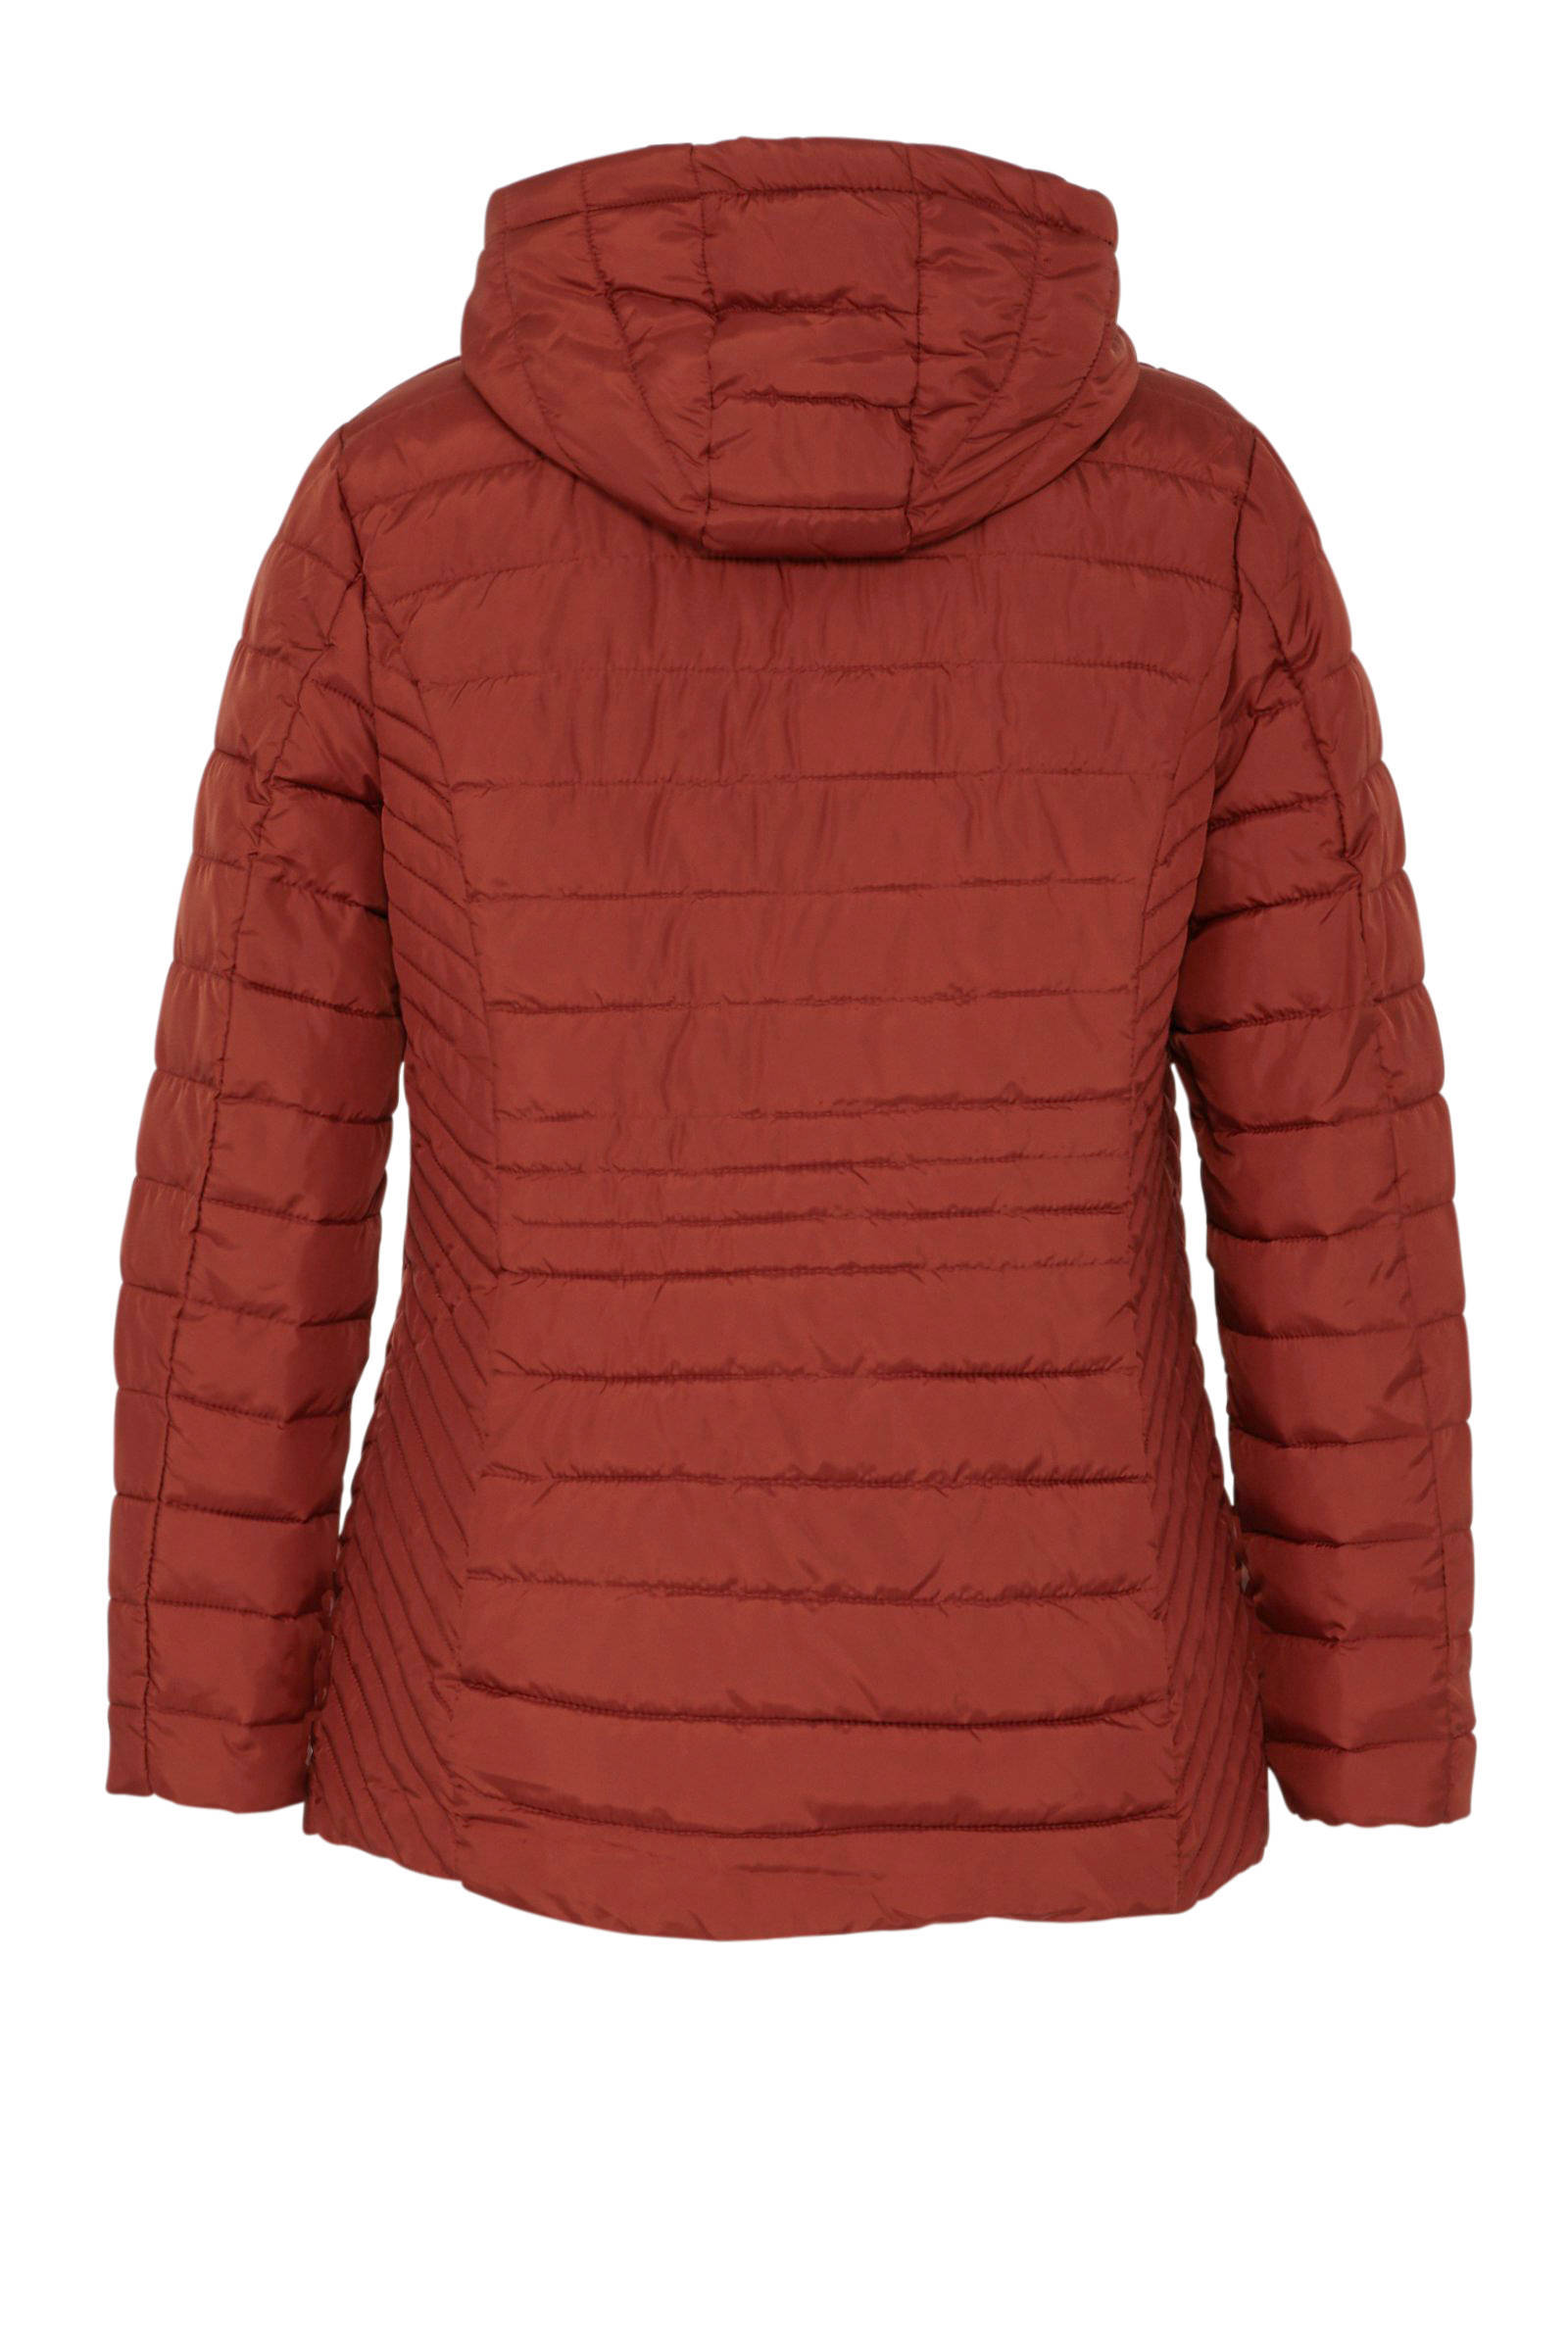 C&A XL Yessica tussenjas rood | wehkamp